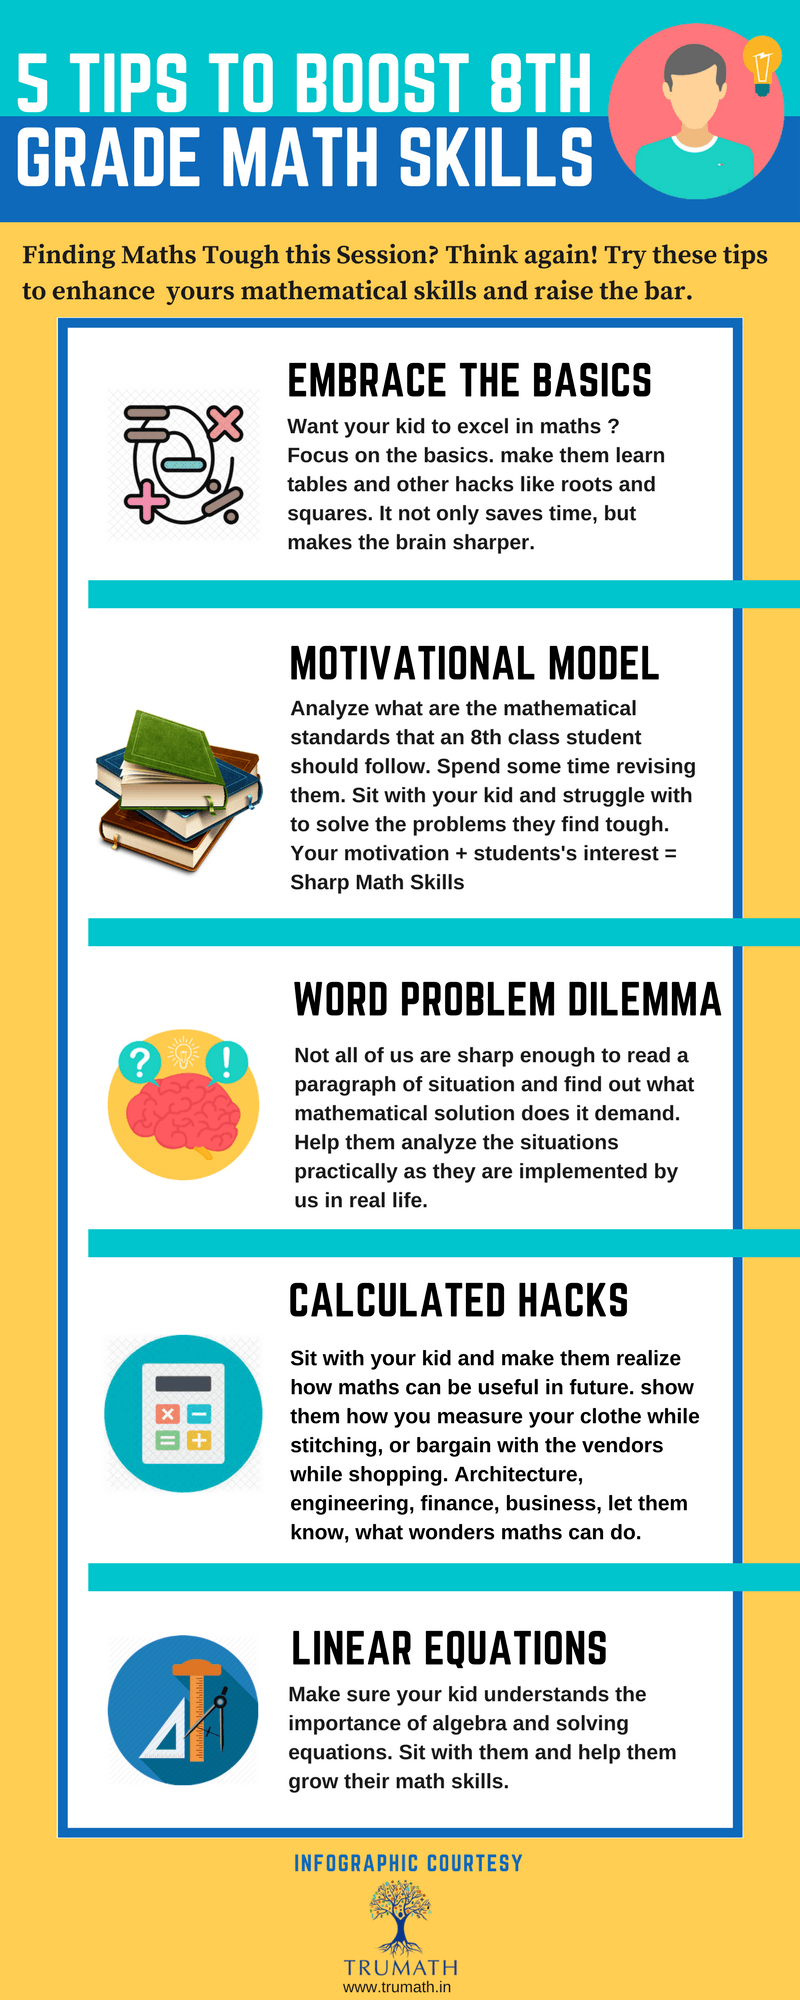 6 Tips To Boost 8th Grade Maths Skills Infographic - e-Learning ...